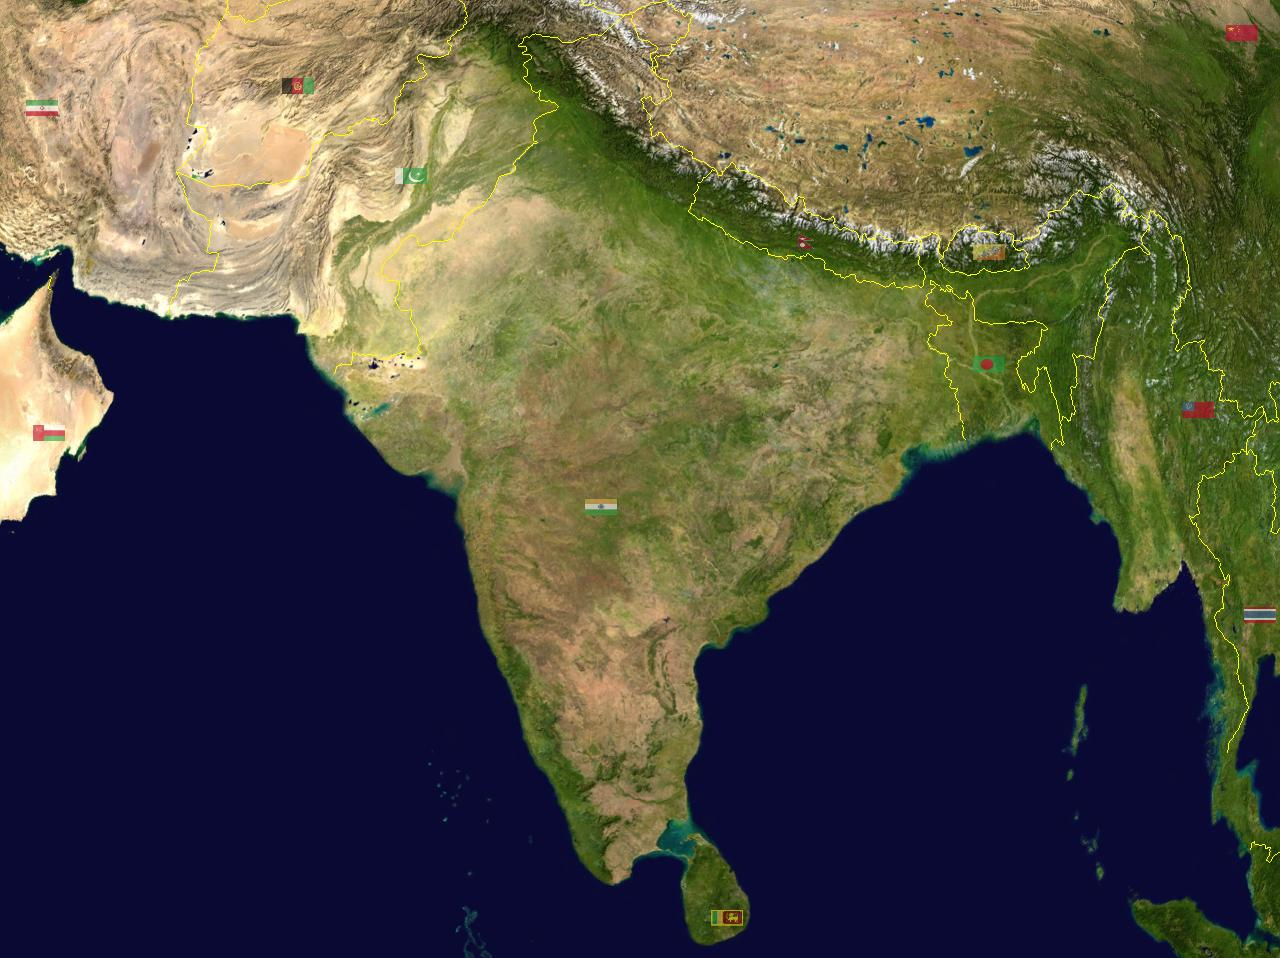 India 7840398E 2074980Njpg Geography of India